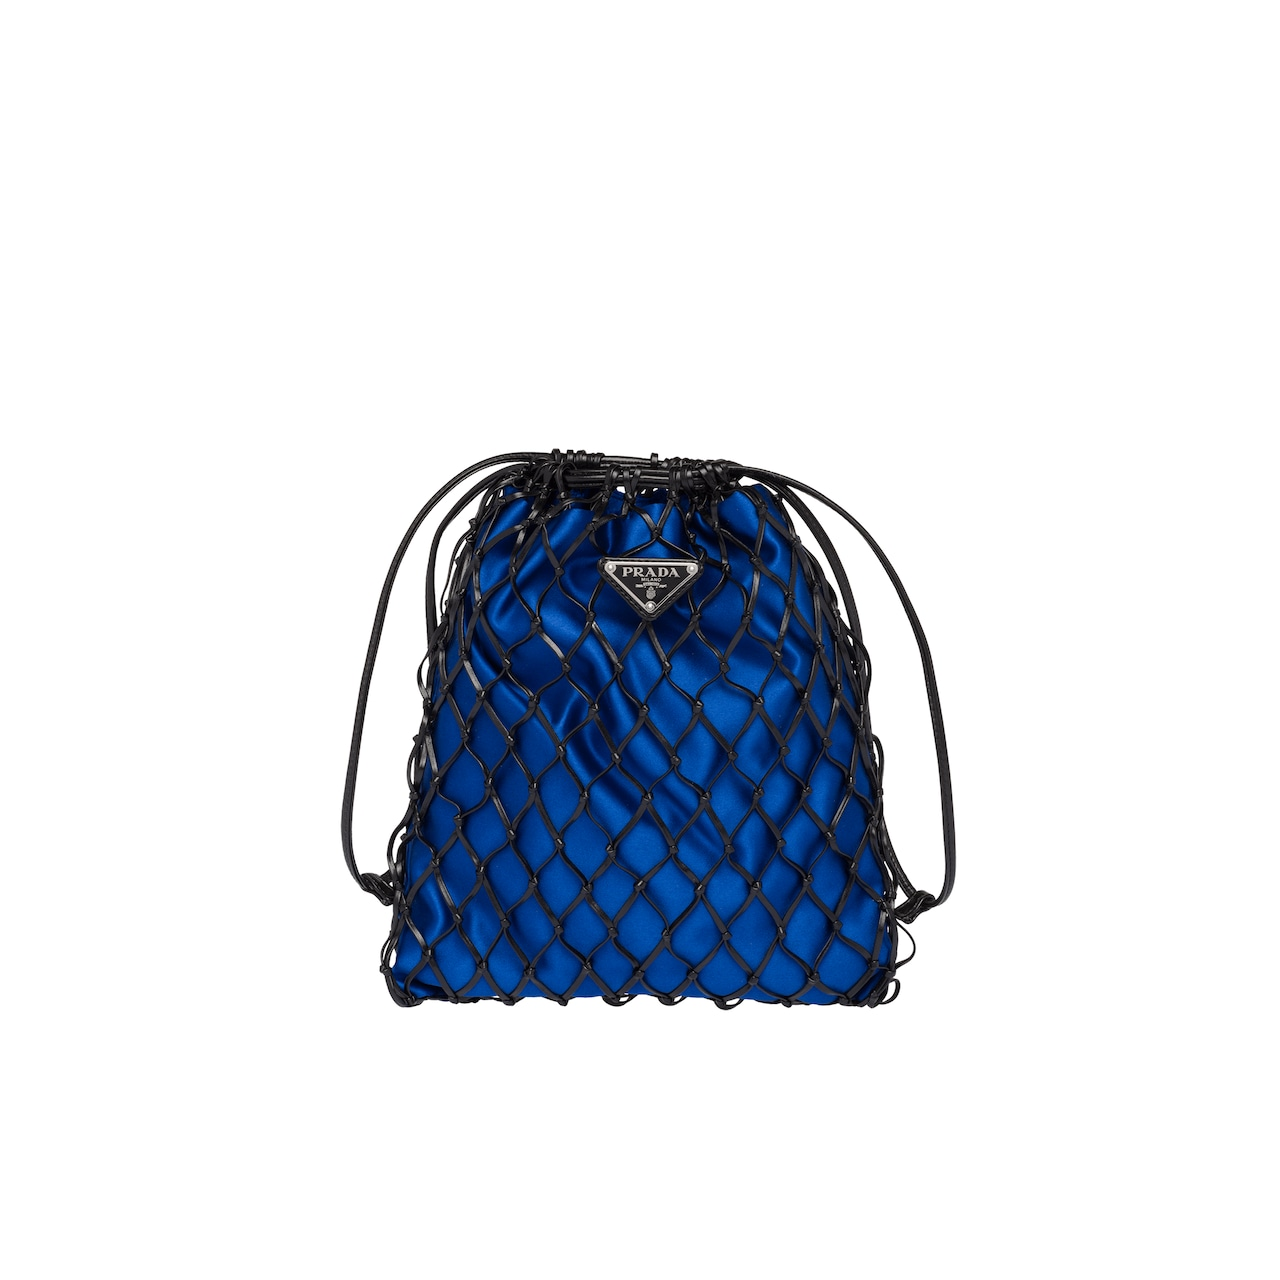 2dcaf1d84a4a Mesh and satin clutch